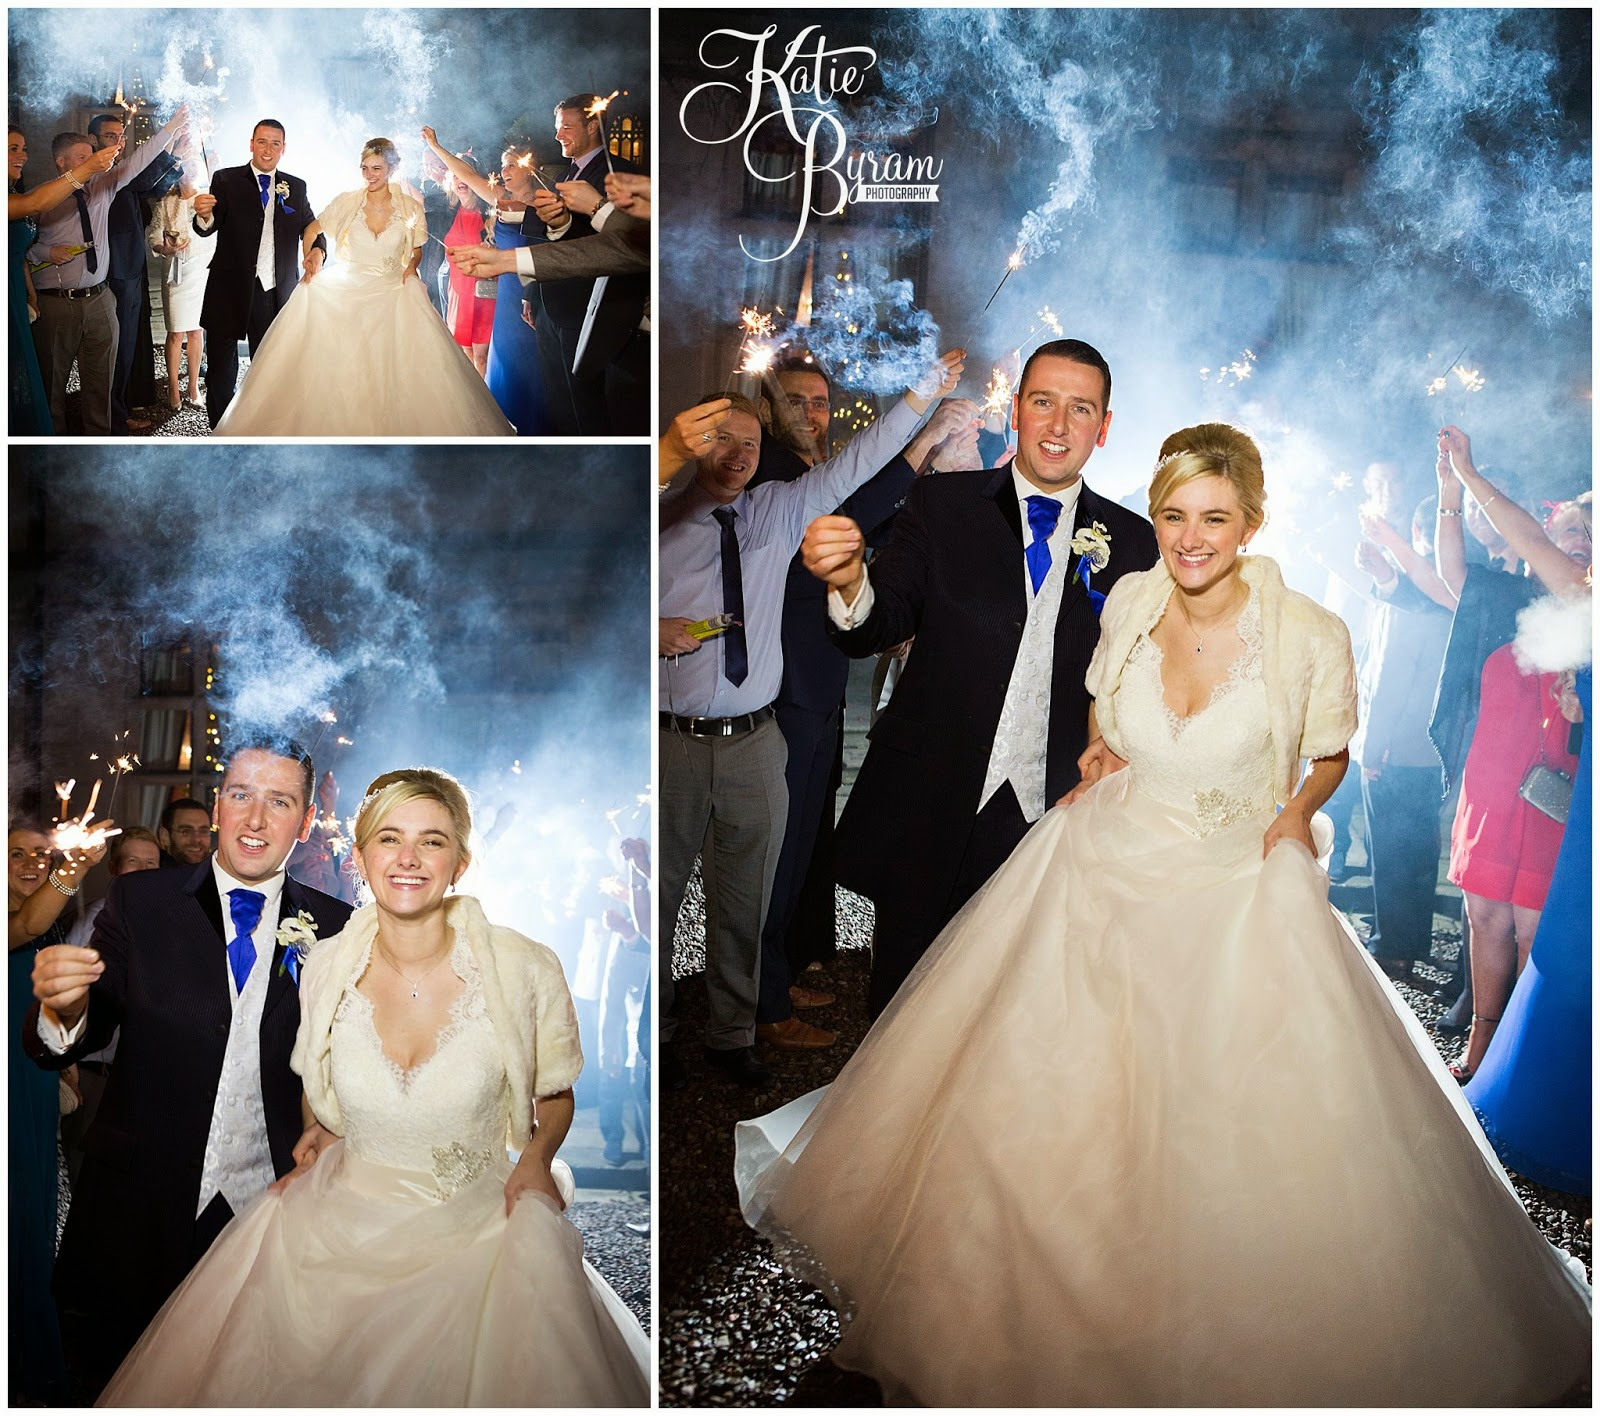 wedding sparklers, bride and groom with sparklers, ,  ellingham hall, ellingham hall wedding, katie byram photography, alnwick treehouse wedding, alnwick garden wedding, alnwick wedding,